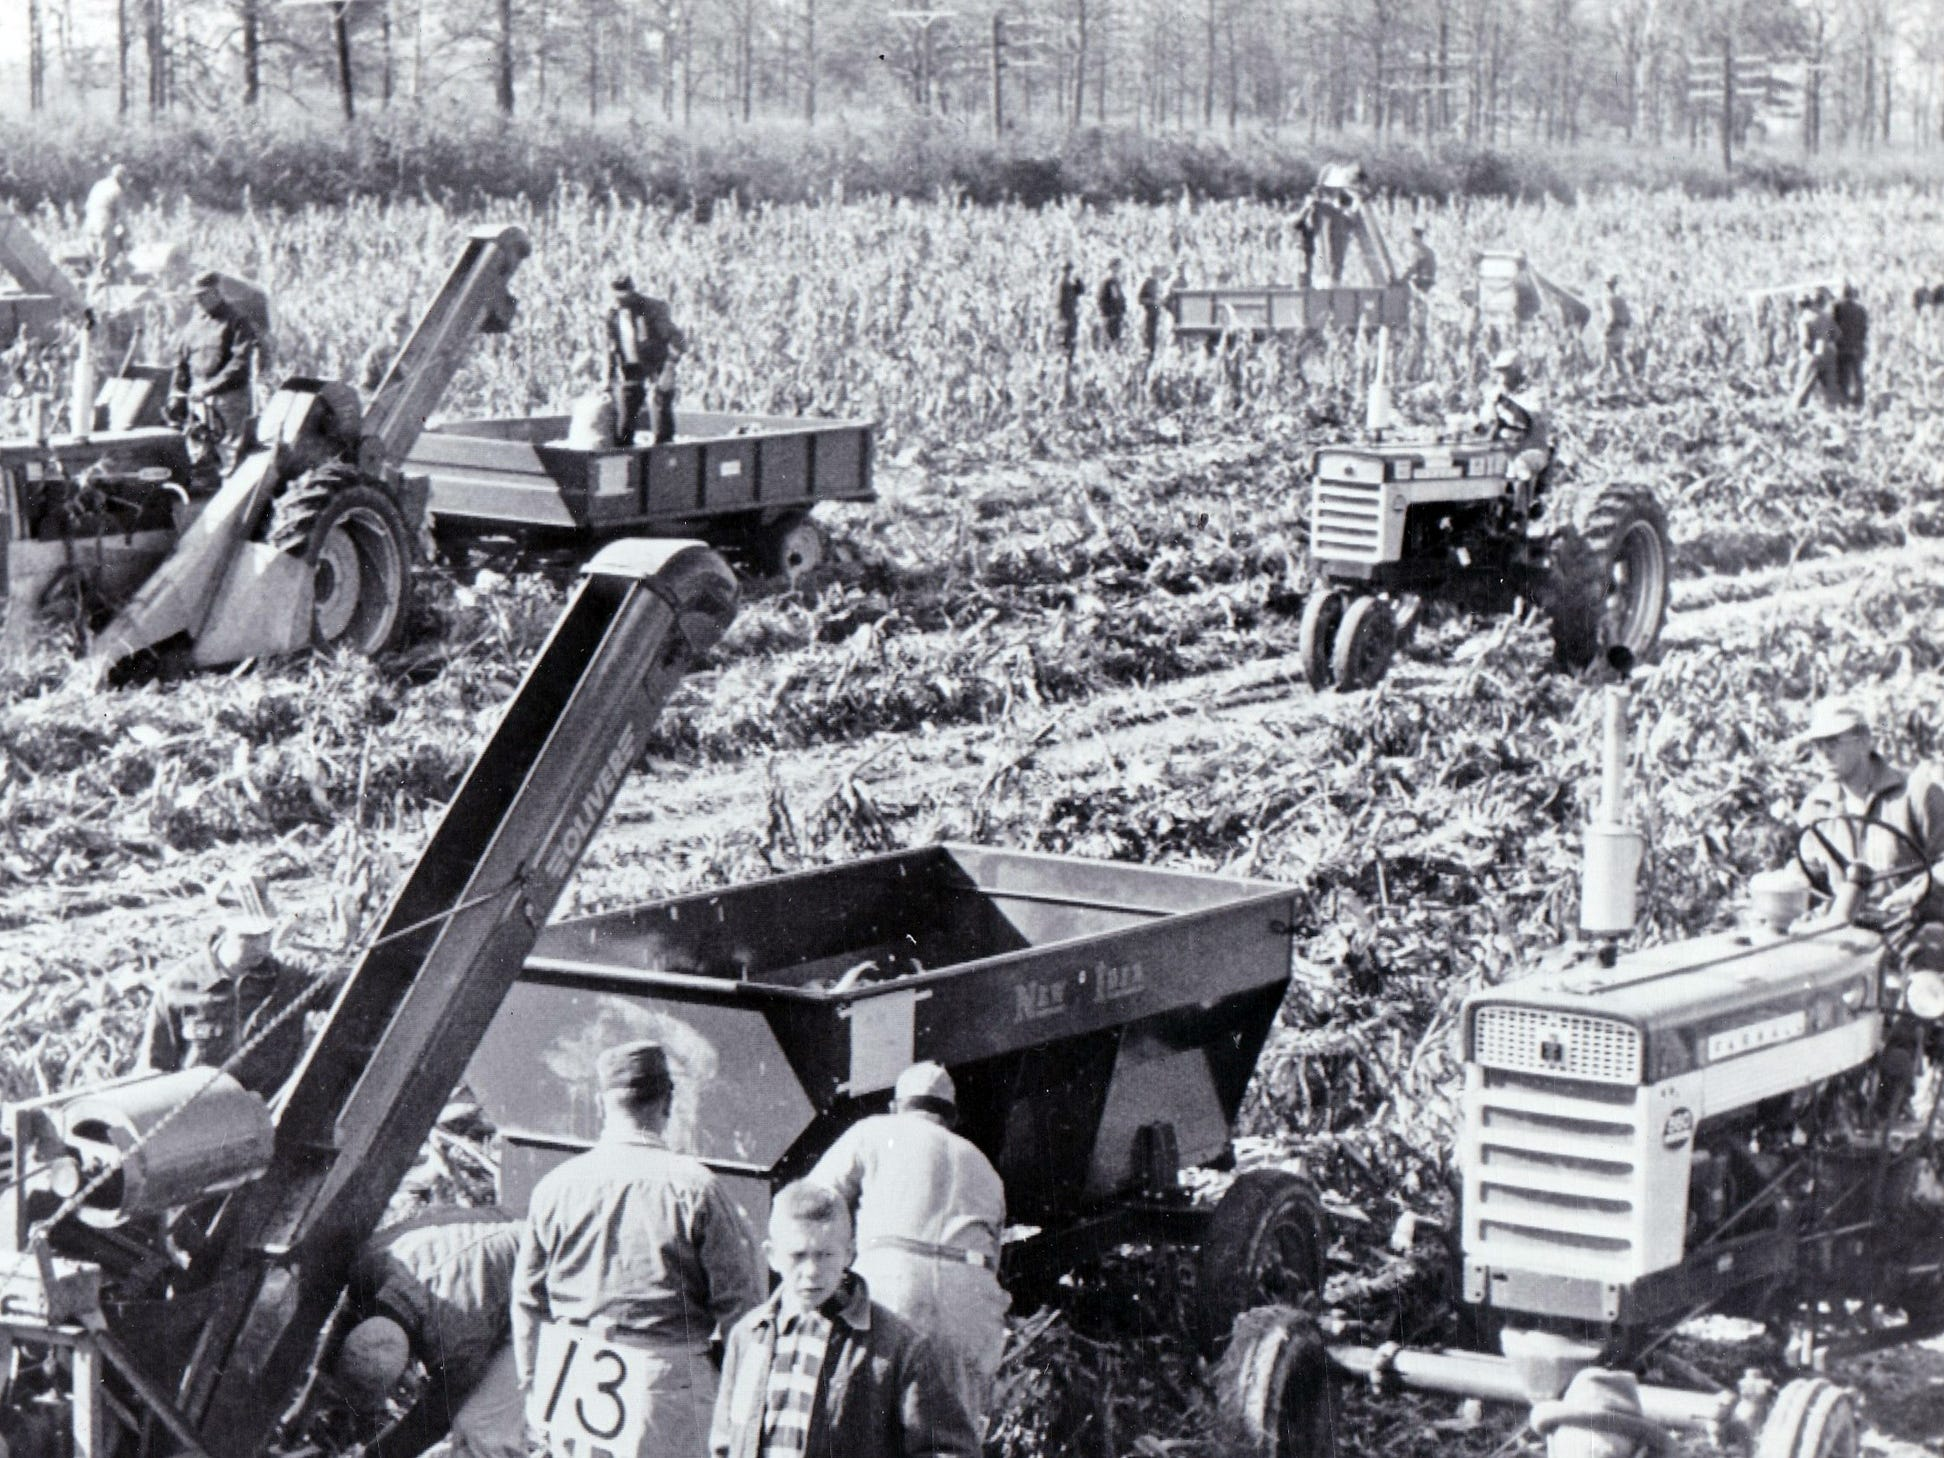 Mechanical corn picking contests were sponsored by corn breeders who worked to create hybrids that would work better for mechanical pickers. Pictured is a 1959 Indiana contest.